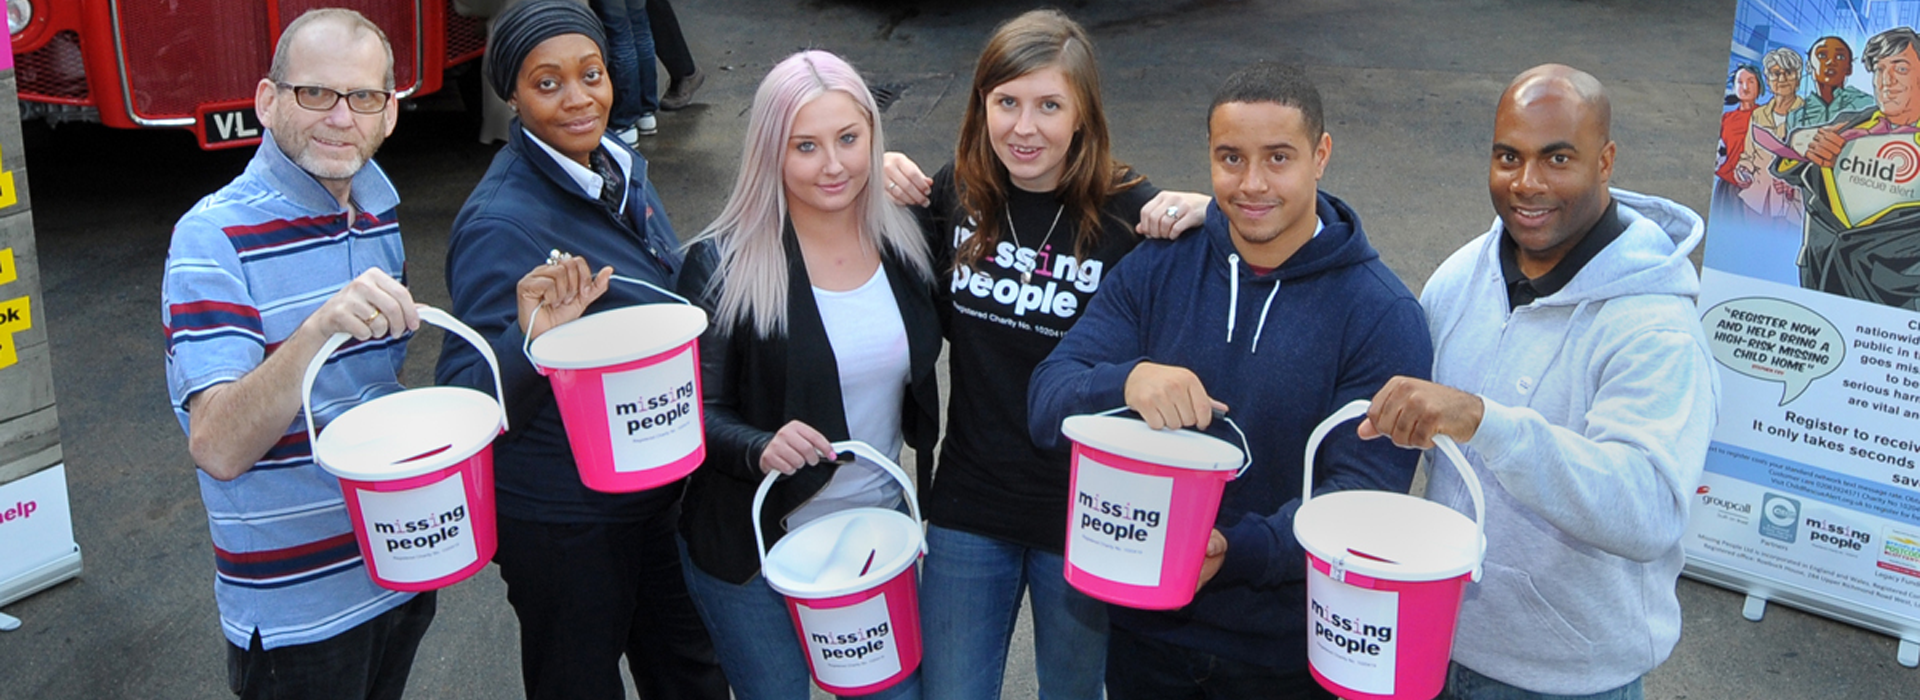 Missing People staff and supporters with fundraising buckets at a event